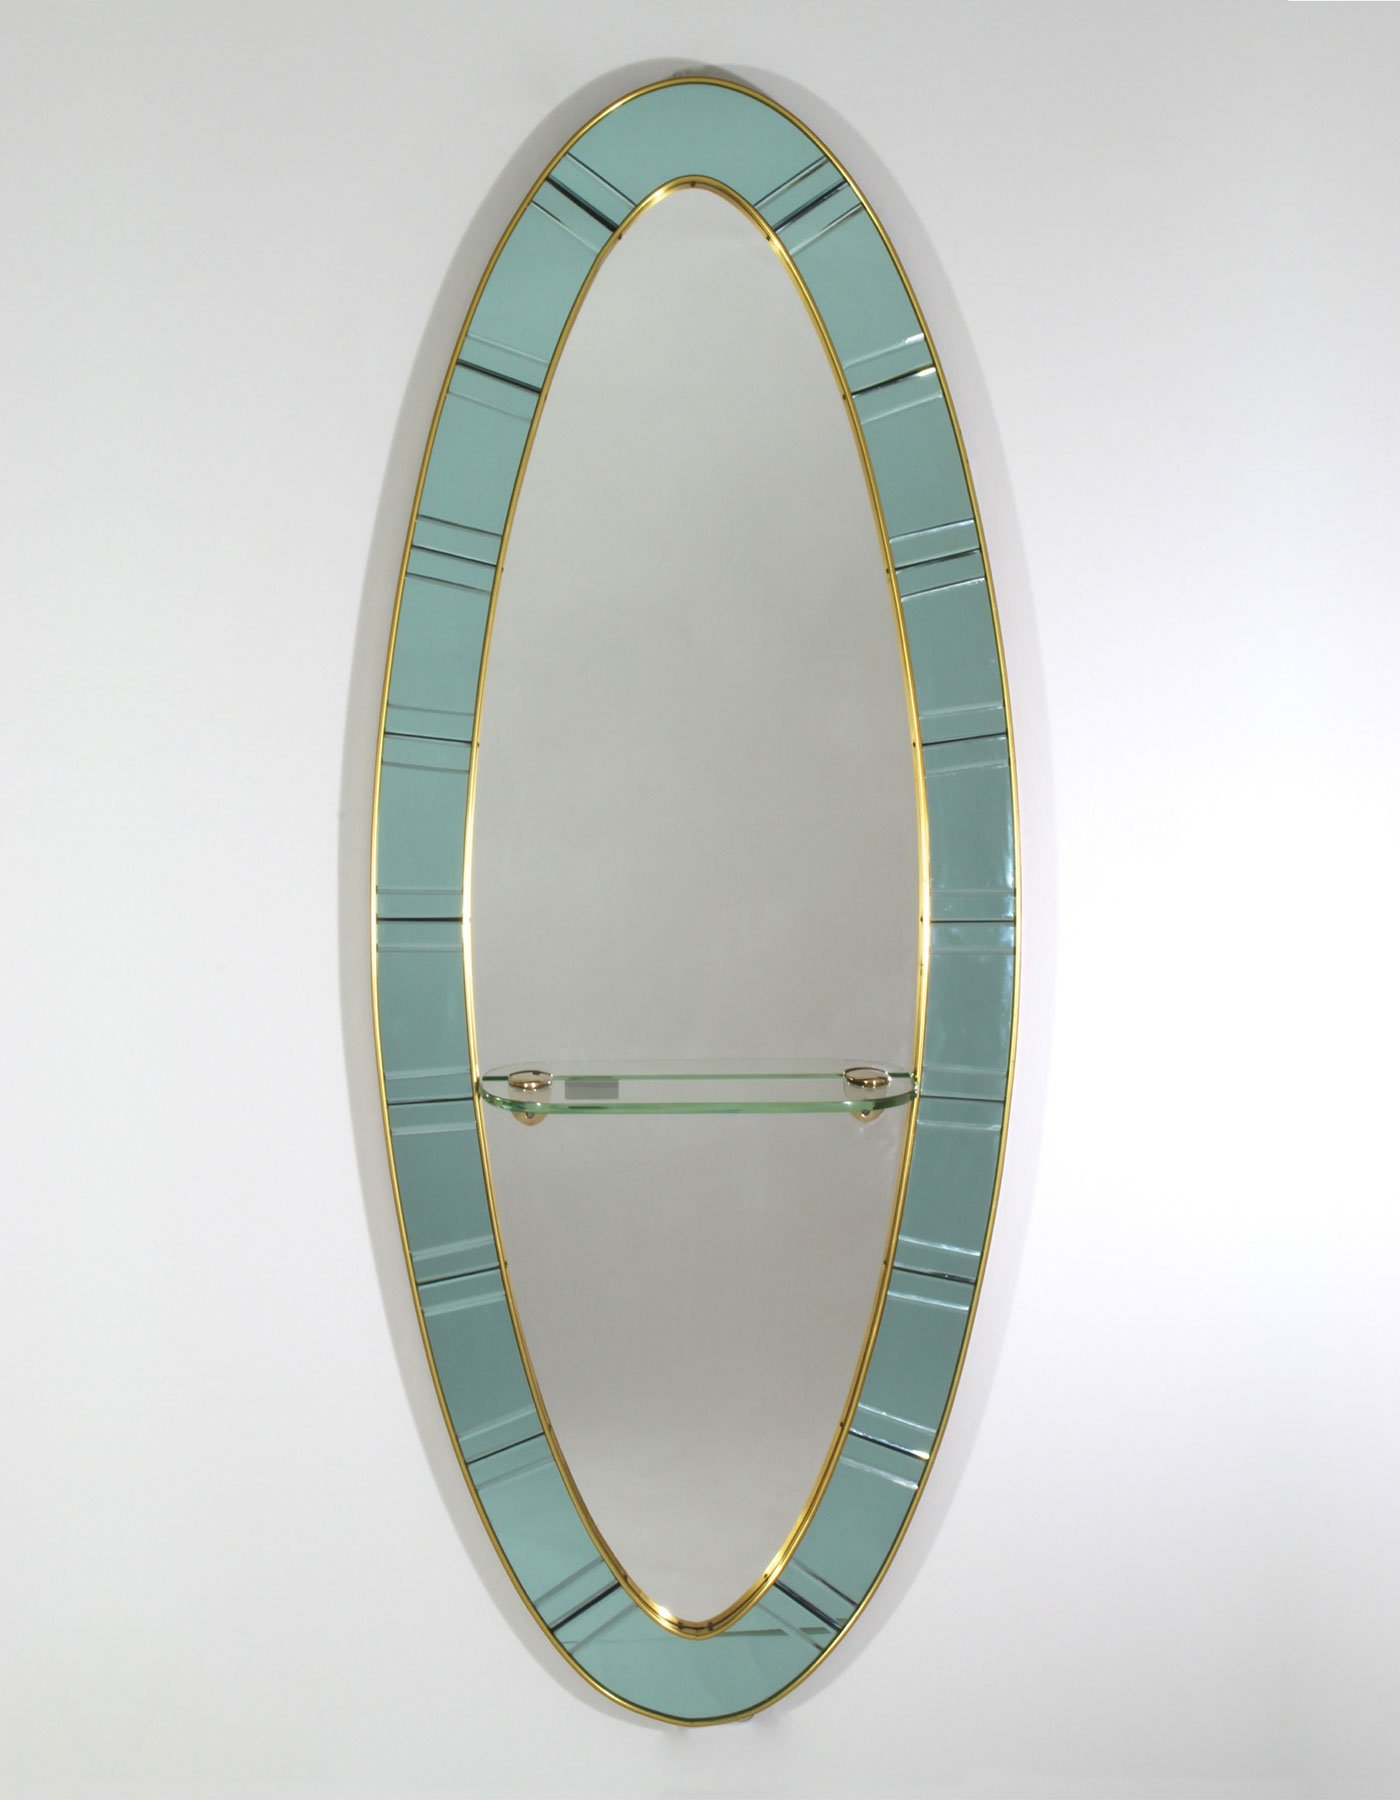 Cristal Art |  Oval mirror